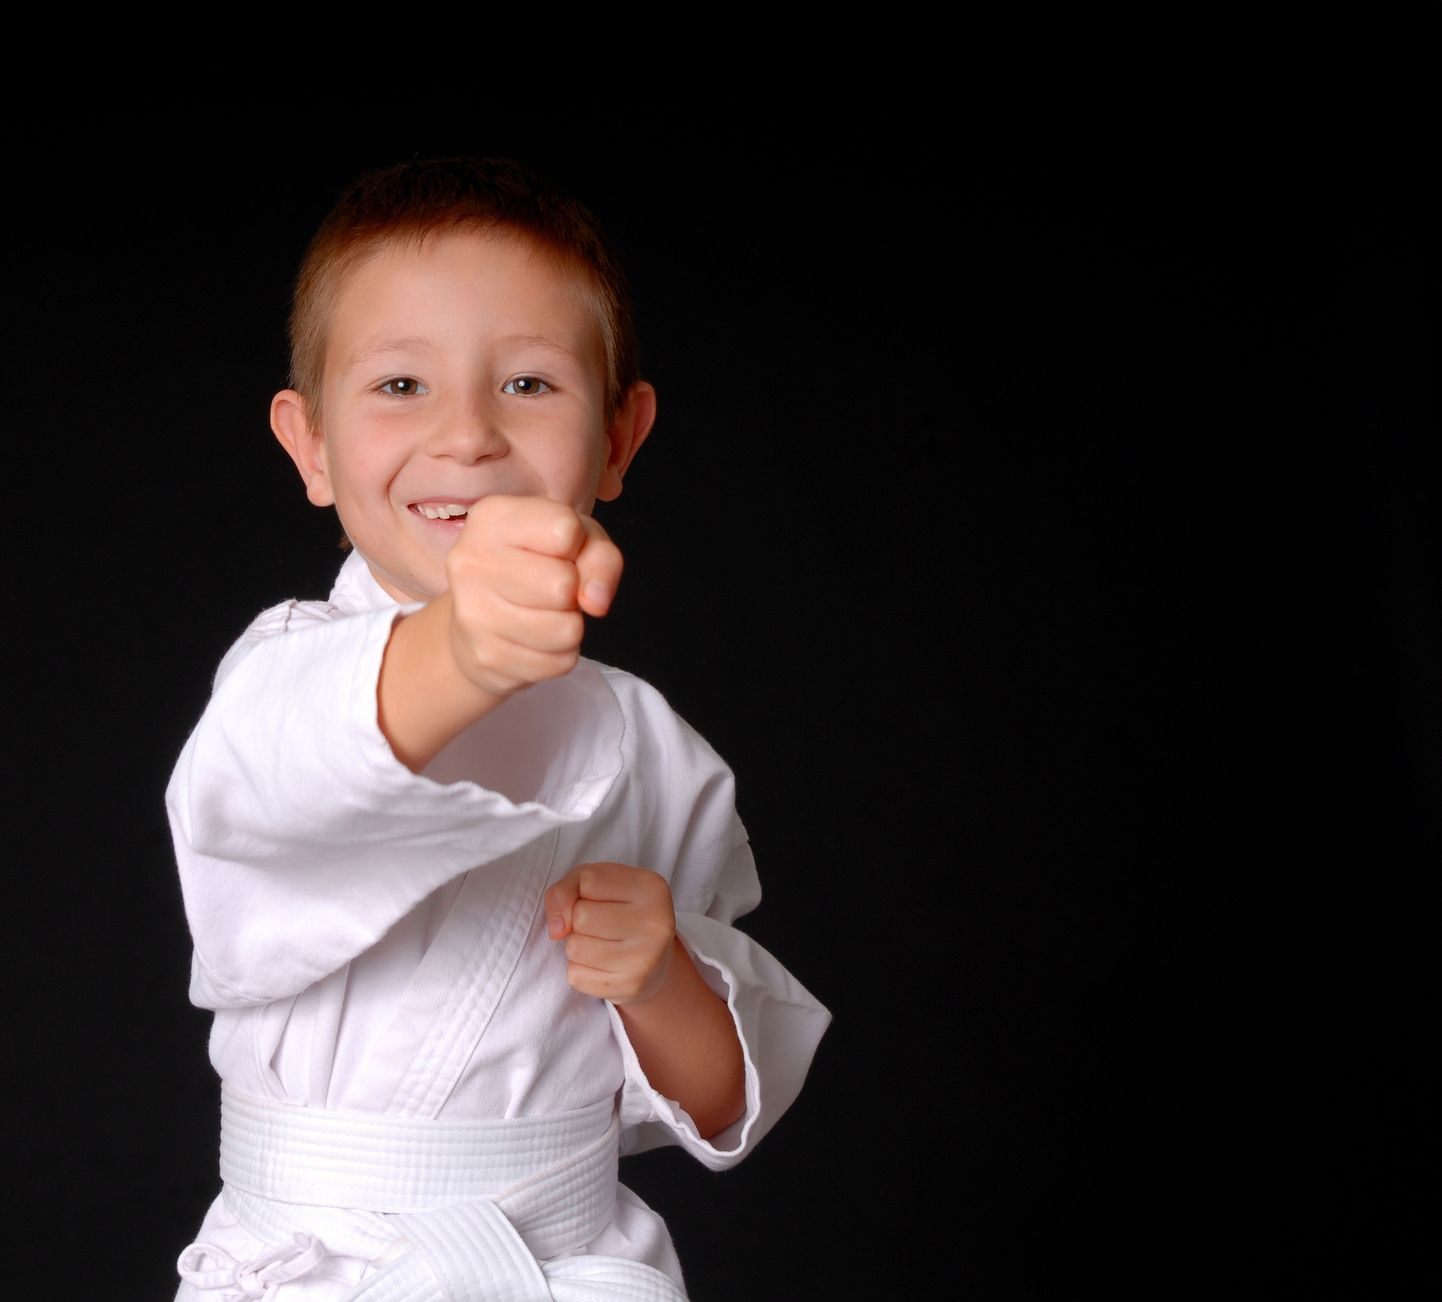 9014840 - young boy in karate outfit making fighting movement